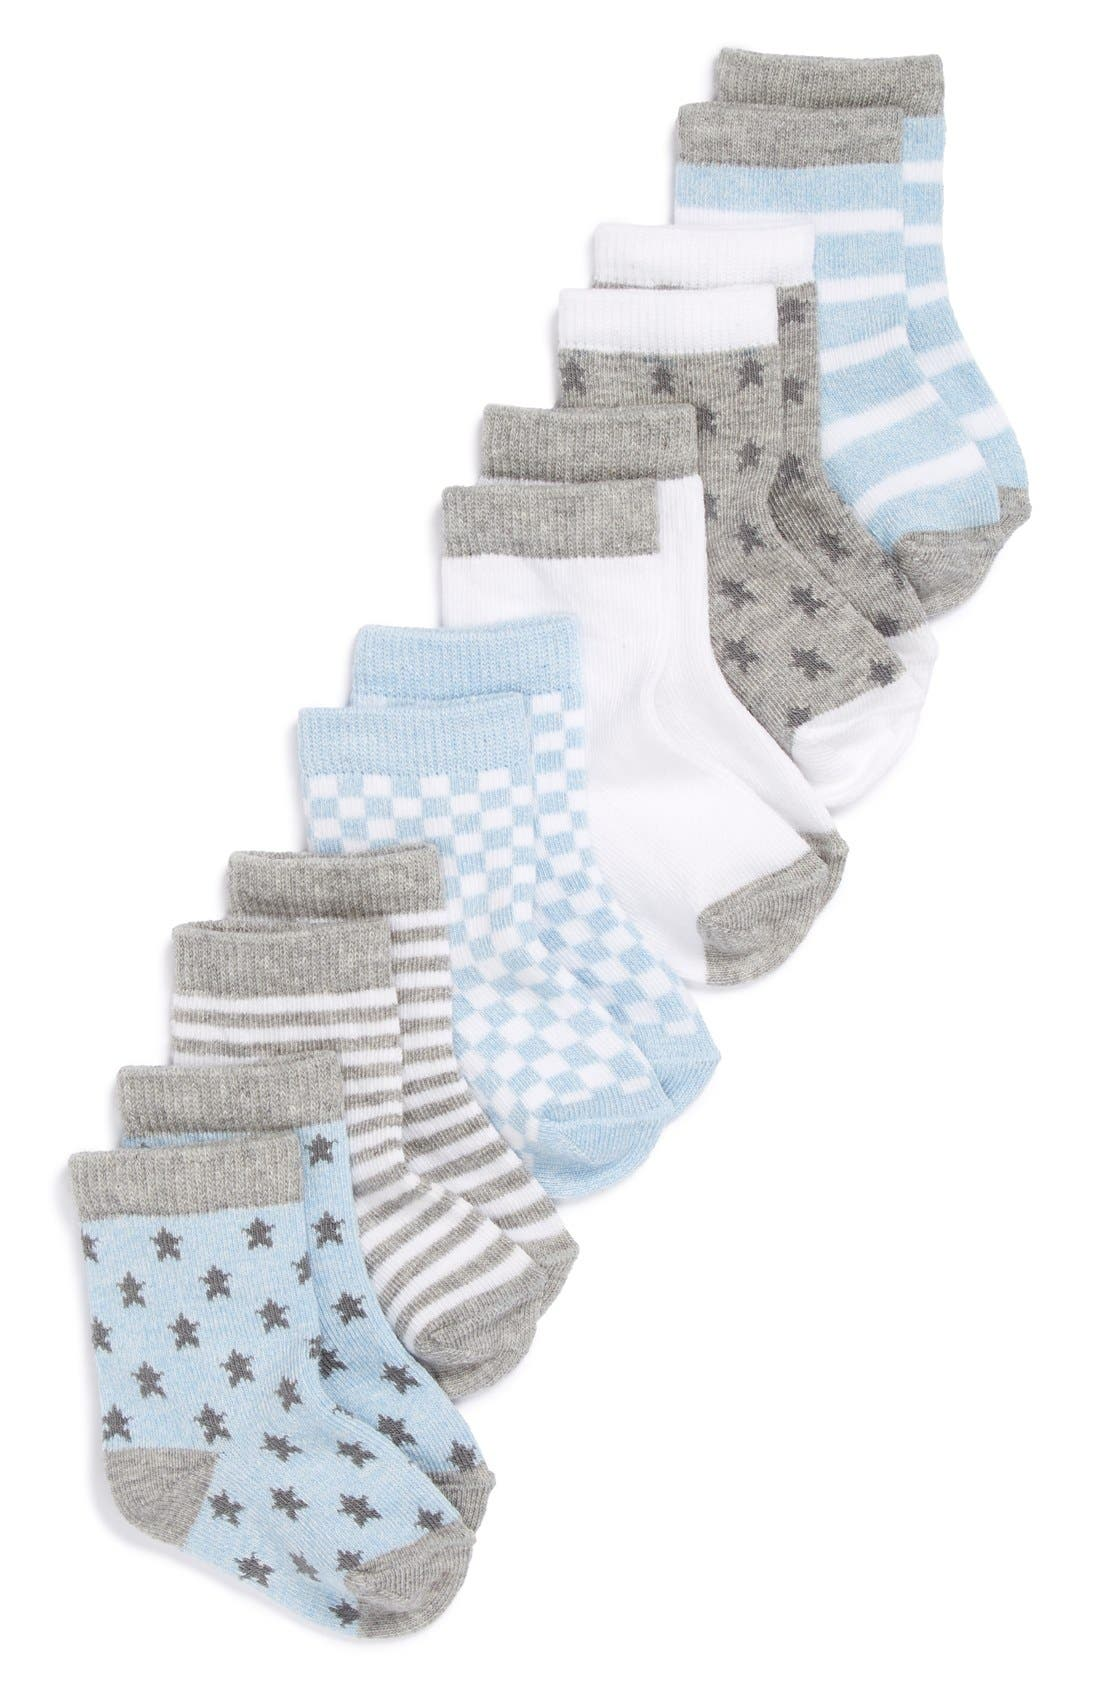 NORDSTROM BABY, Crew Socks, Main thumbnail 1, color, BLUE HEATHER PACK